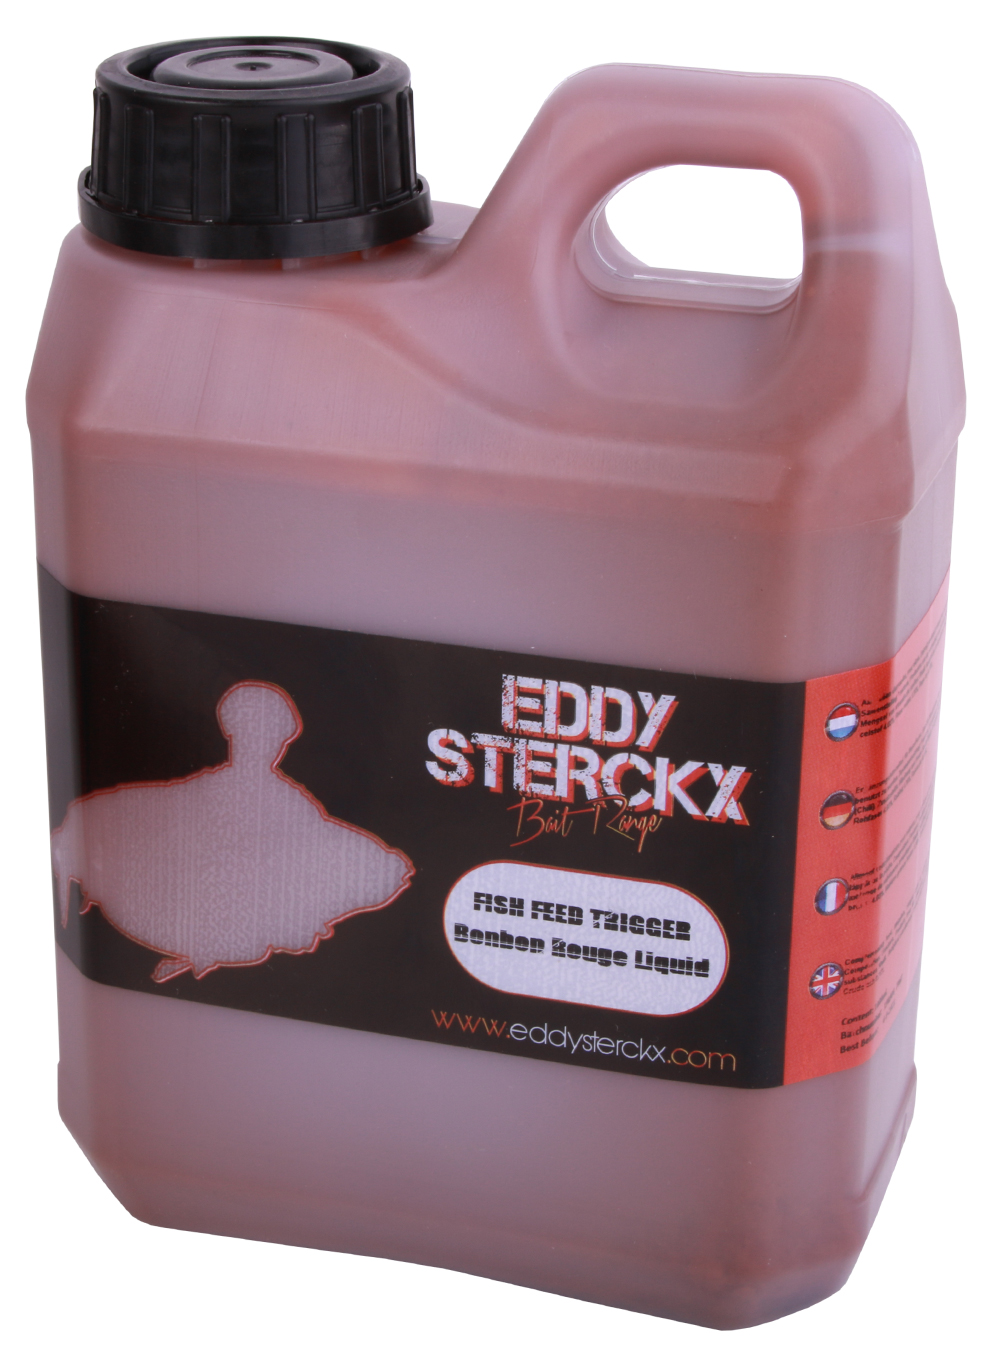 Eddy Sterckx Red Angel Mulberry Pack met boilies, popups en liquid